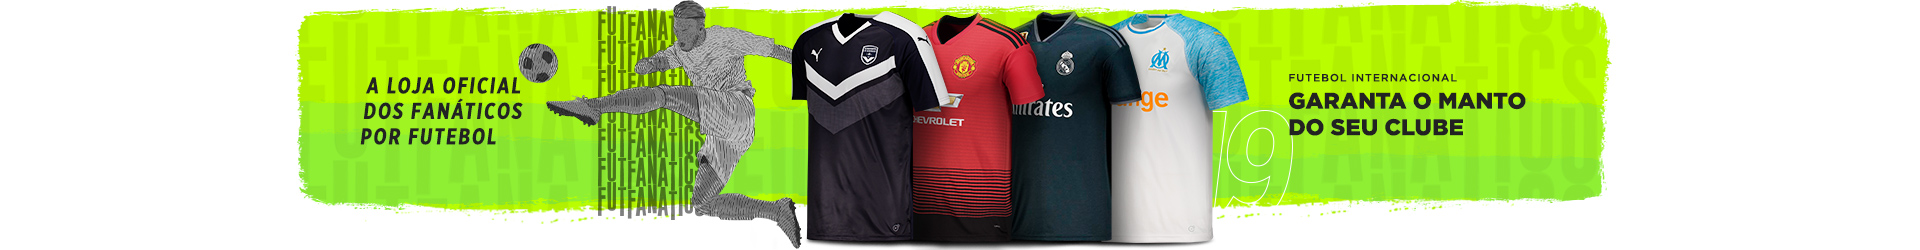 7f10b093e0 Camisas de Futebol do Arsenal - FutFanatics